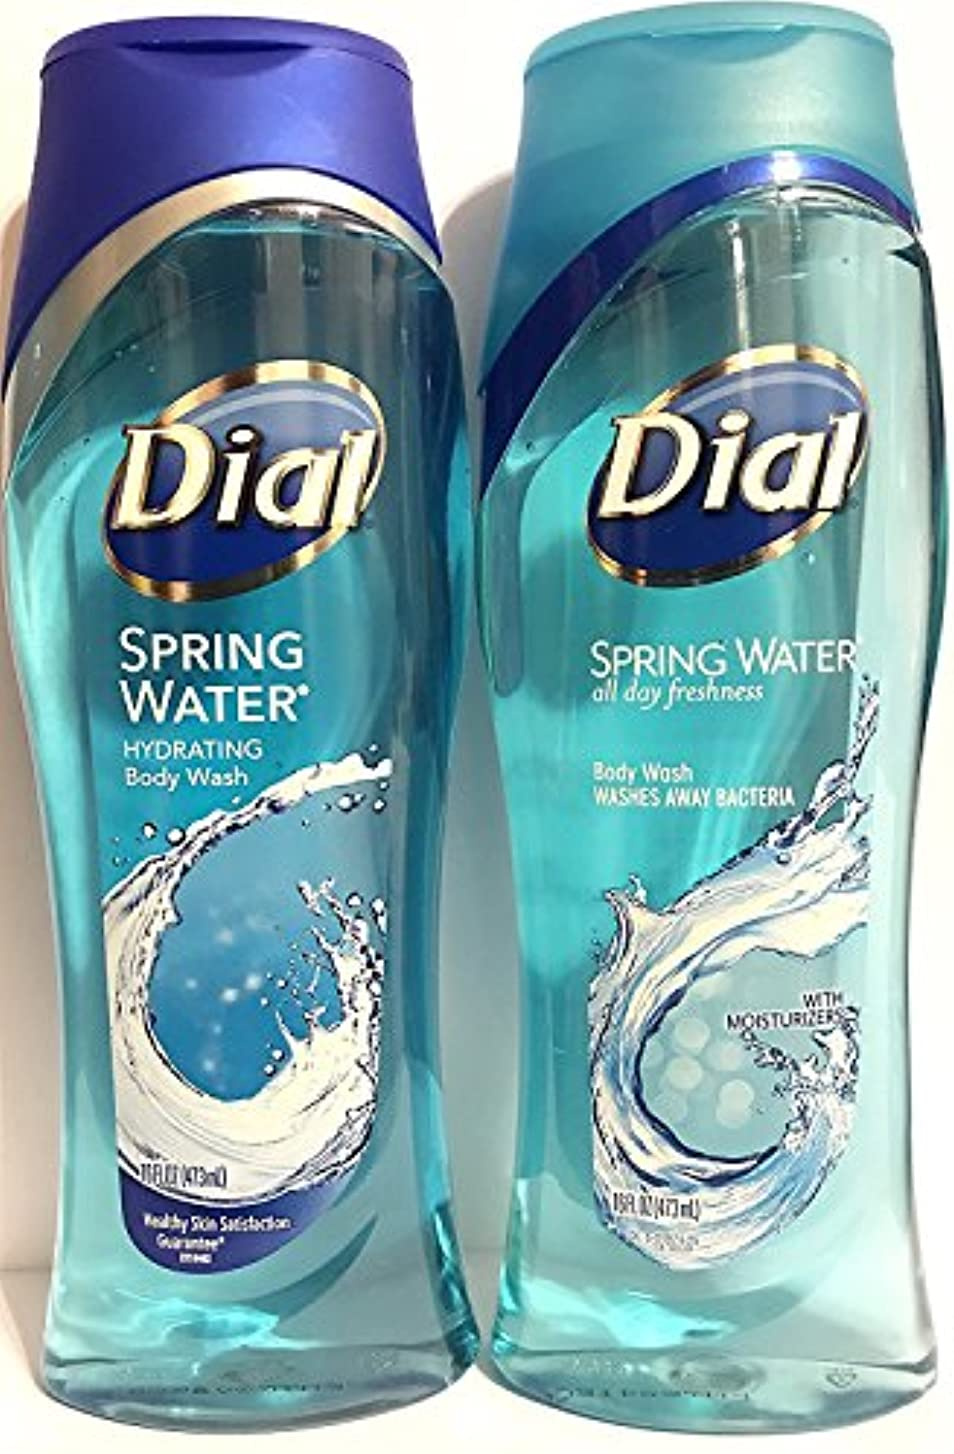 粘液ブルデータベースDial Body Wash, Spring Water, 16 Fl. Oz - 2 pk by Dial [並行輸入品]